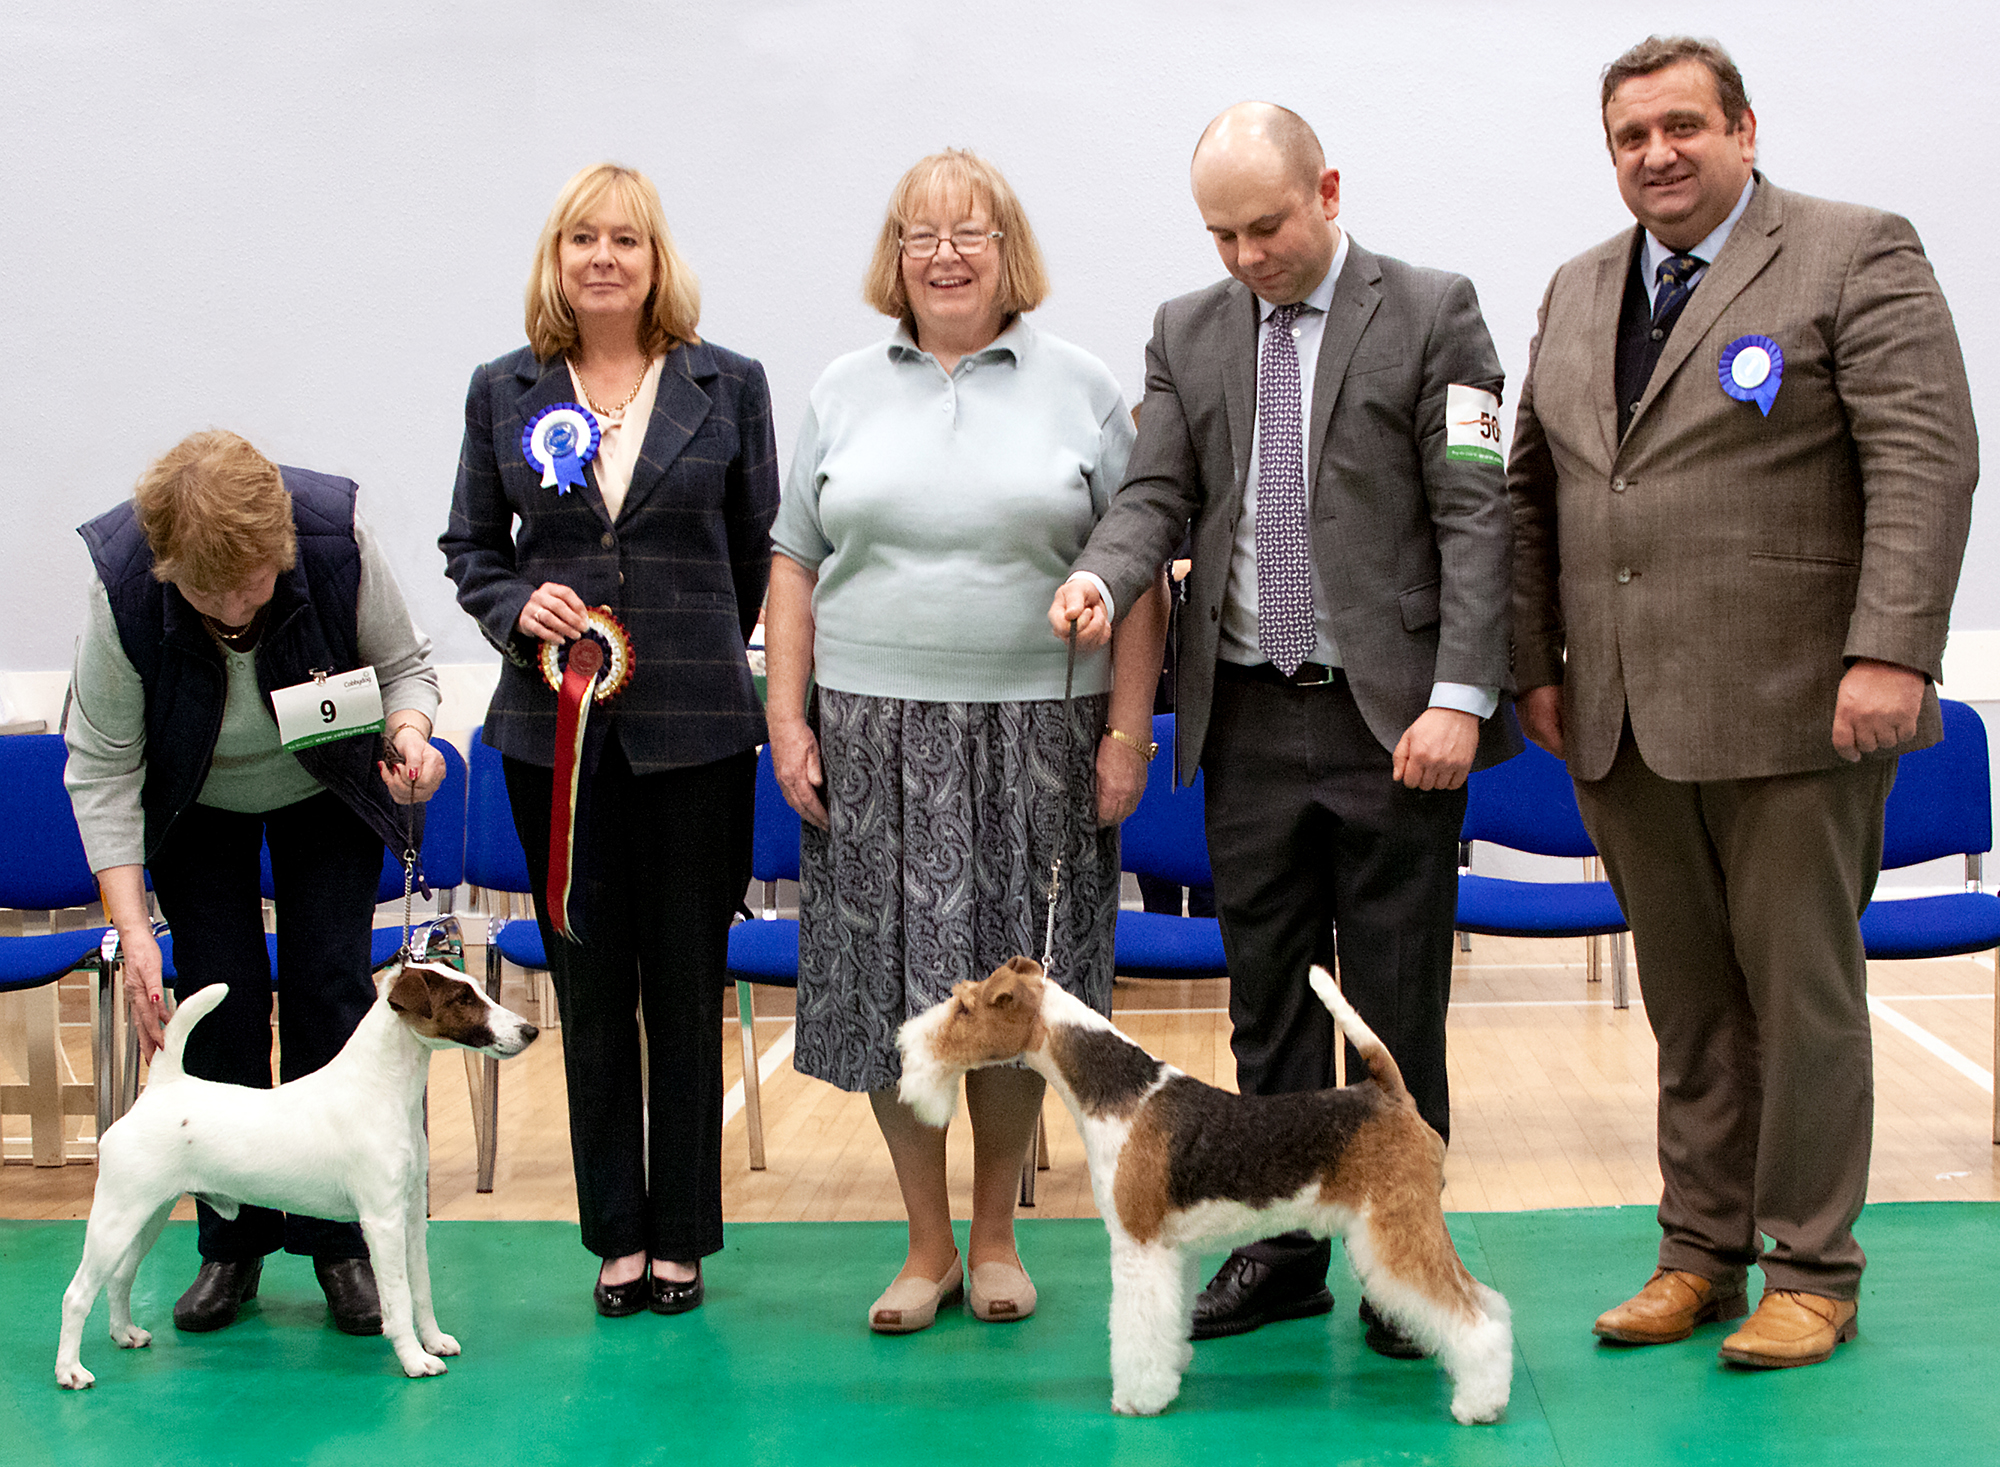 Best In Show, Ch Oaxaca Del Boy with Roxway (left) & RBIS, Ch Blackdale Dignitary (right)